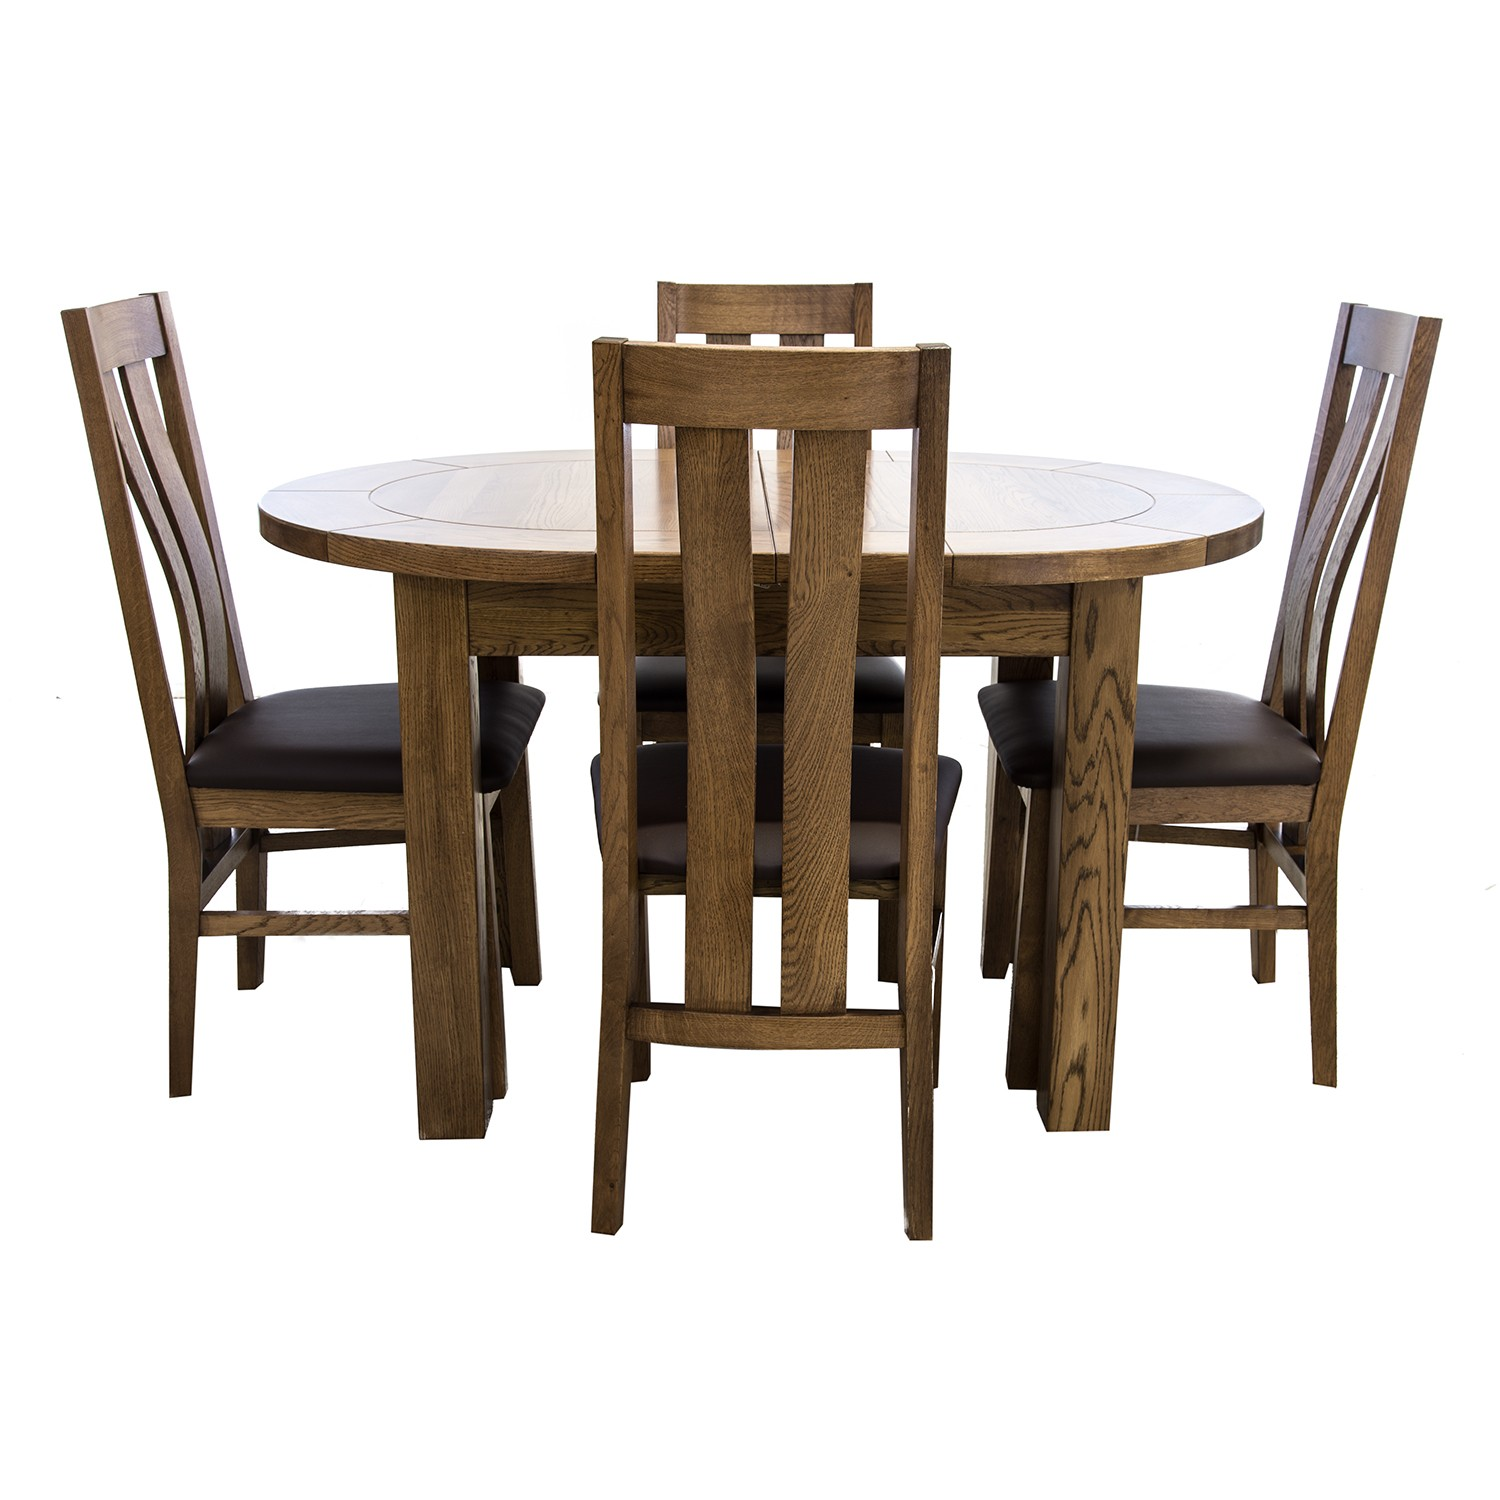 Small Dining Table For 4: Casa Bordeaux Small D-End Table & 4 Chairs Dining Set